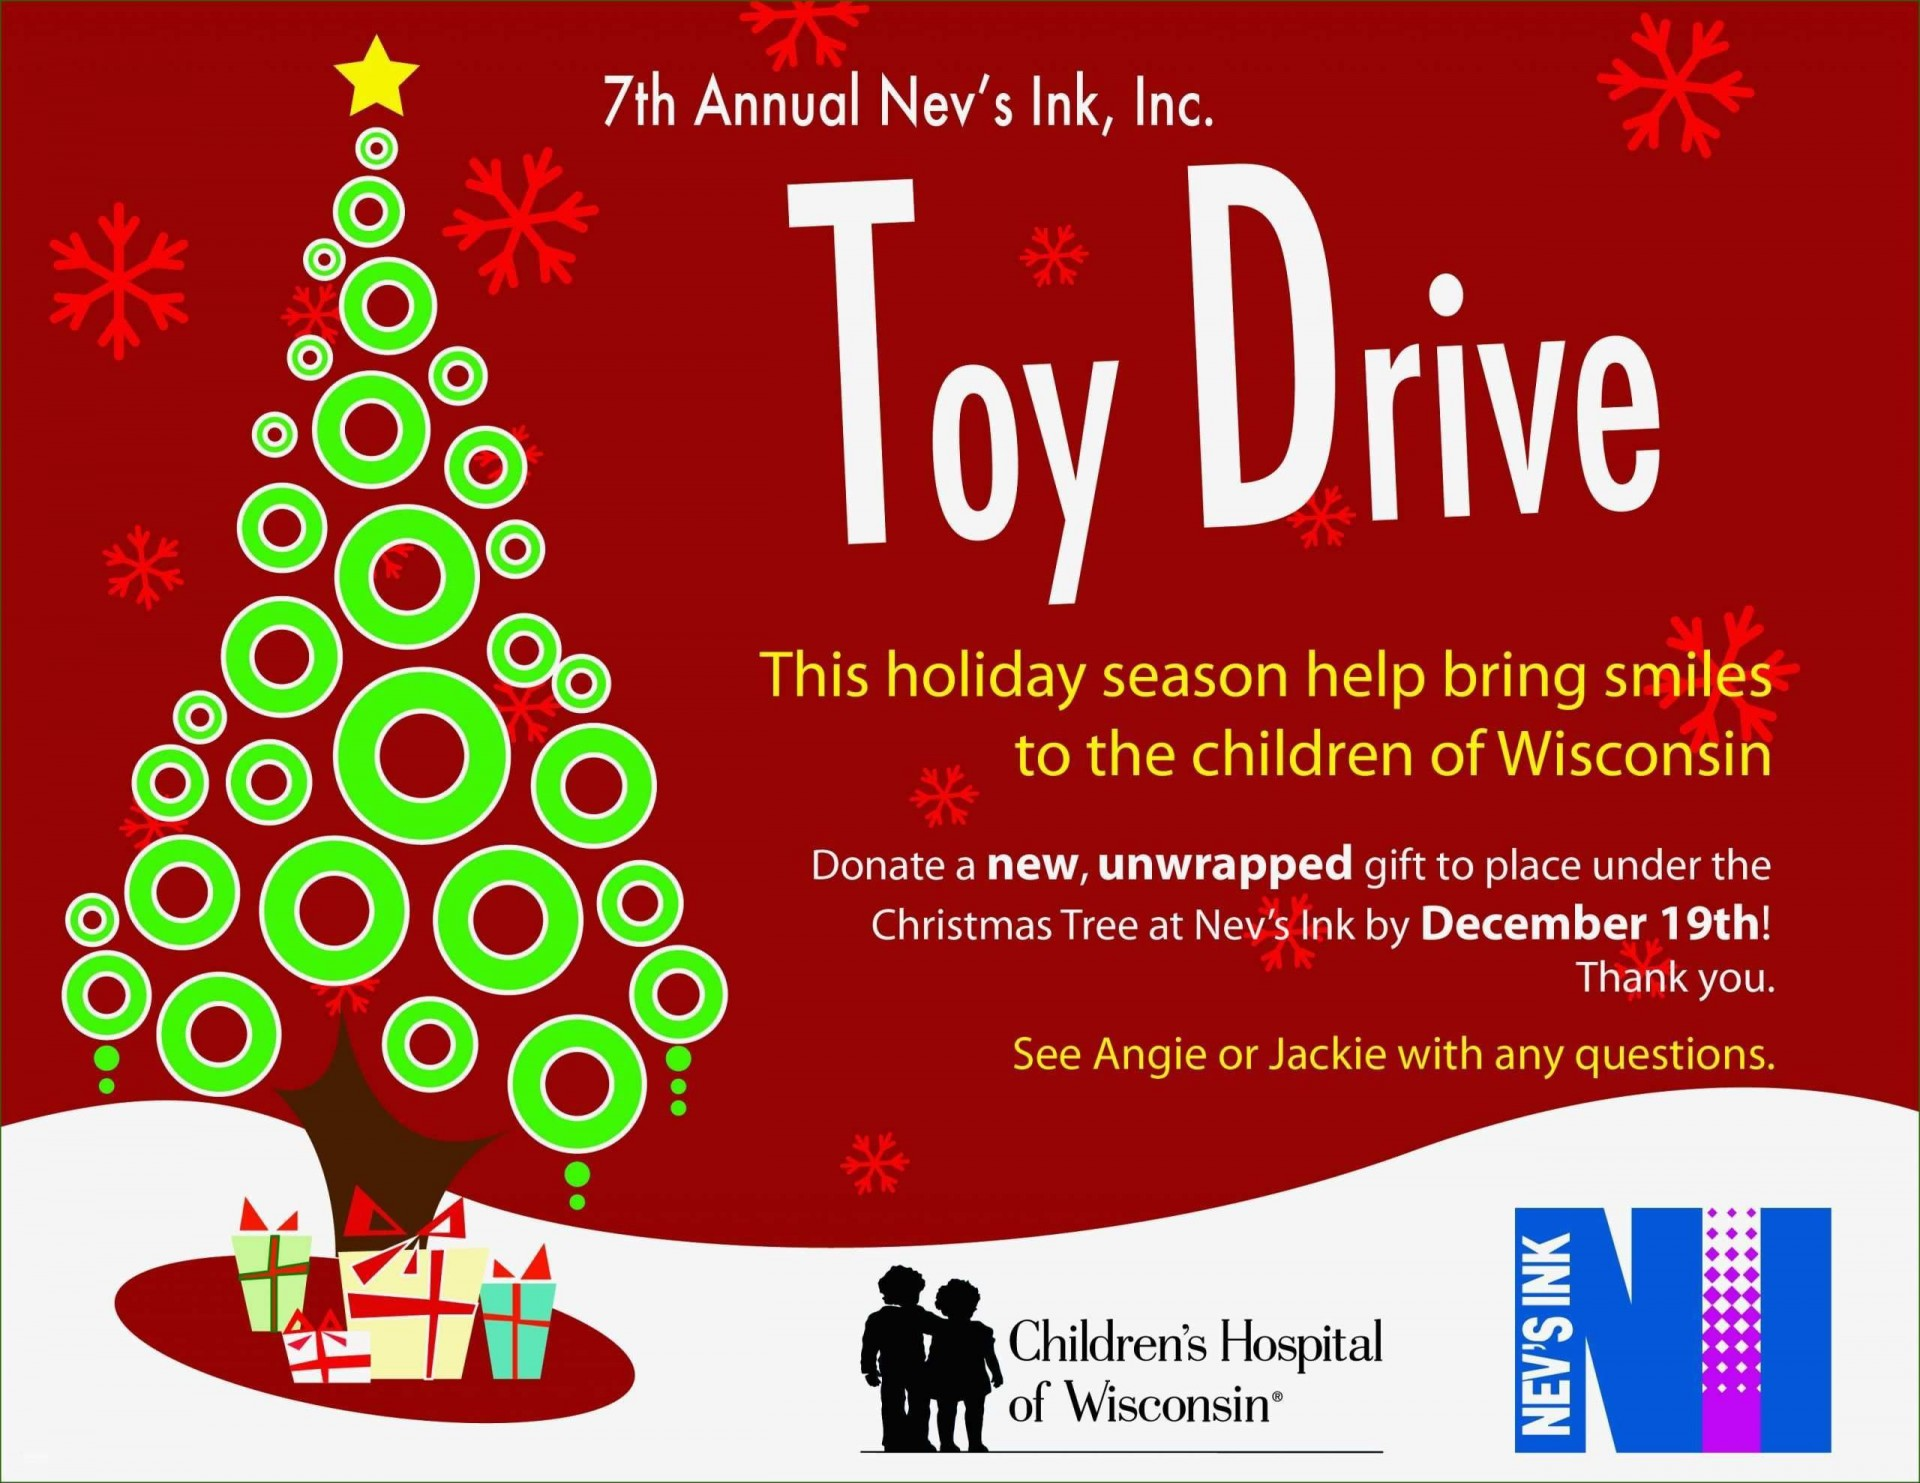 005 Unusual Toy Drive Flyer Template Free Photo  Download Christma1920